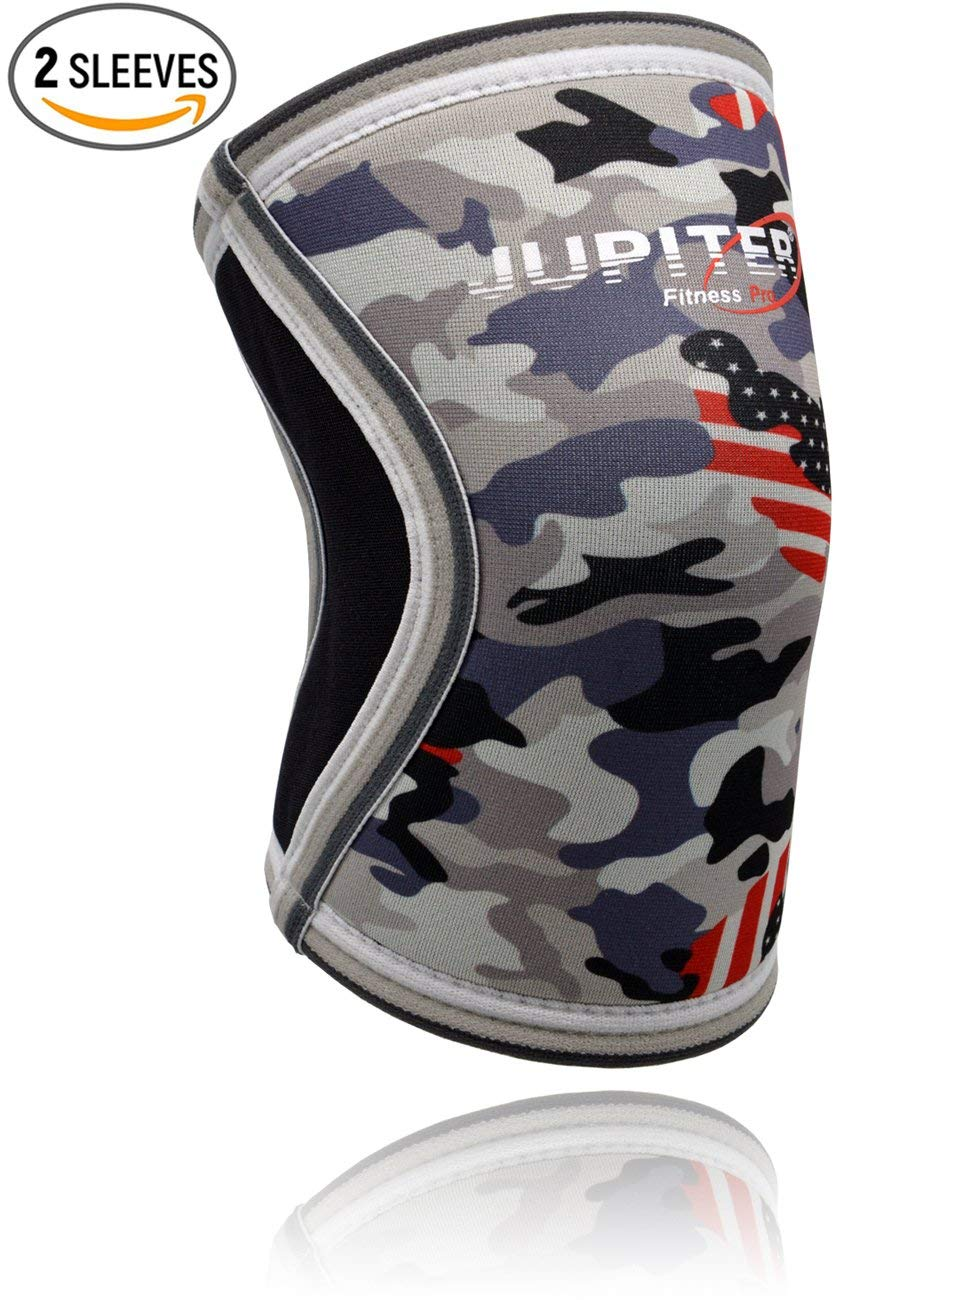 9e47ff4fbd Get Quotations · Elbow Sleeves (1 Pair) Support & Compression for  Weightlifting, Powerlifting, Crossfit,